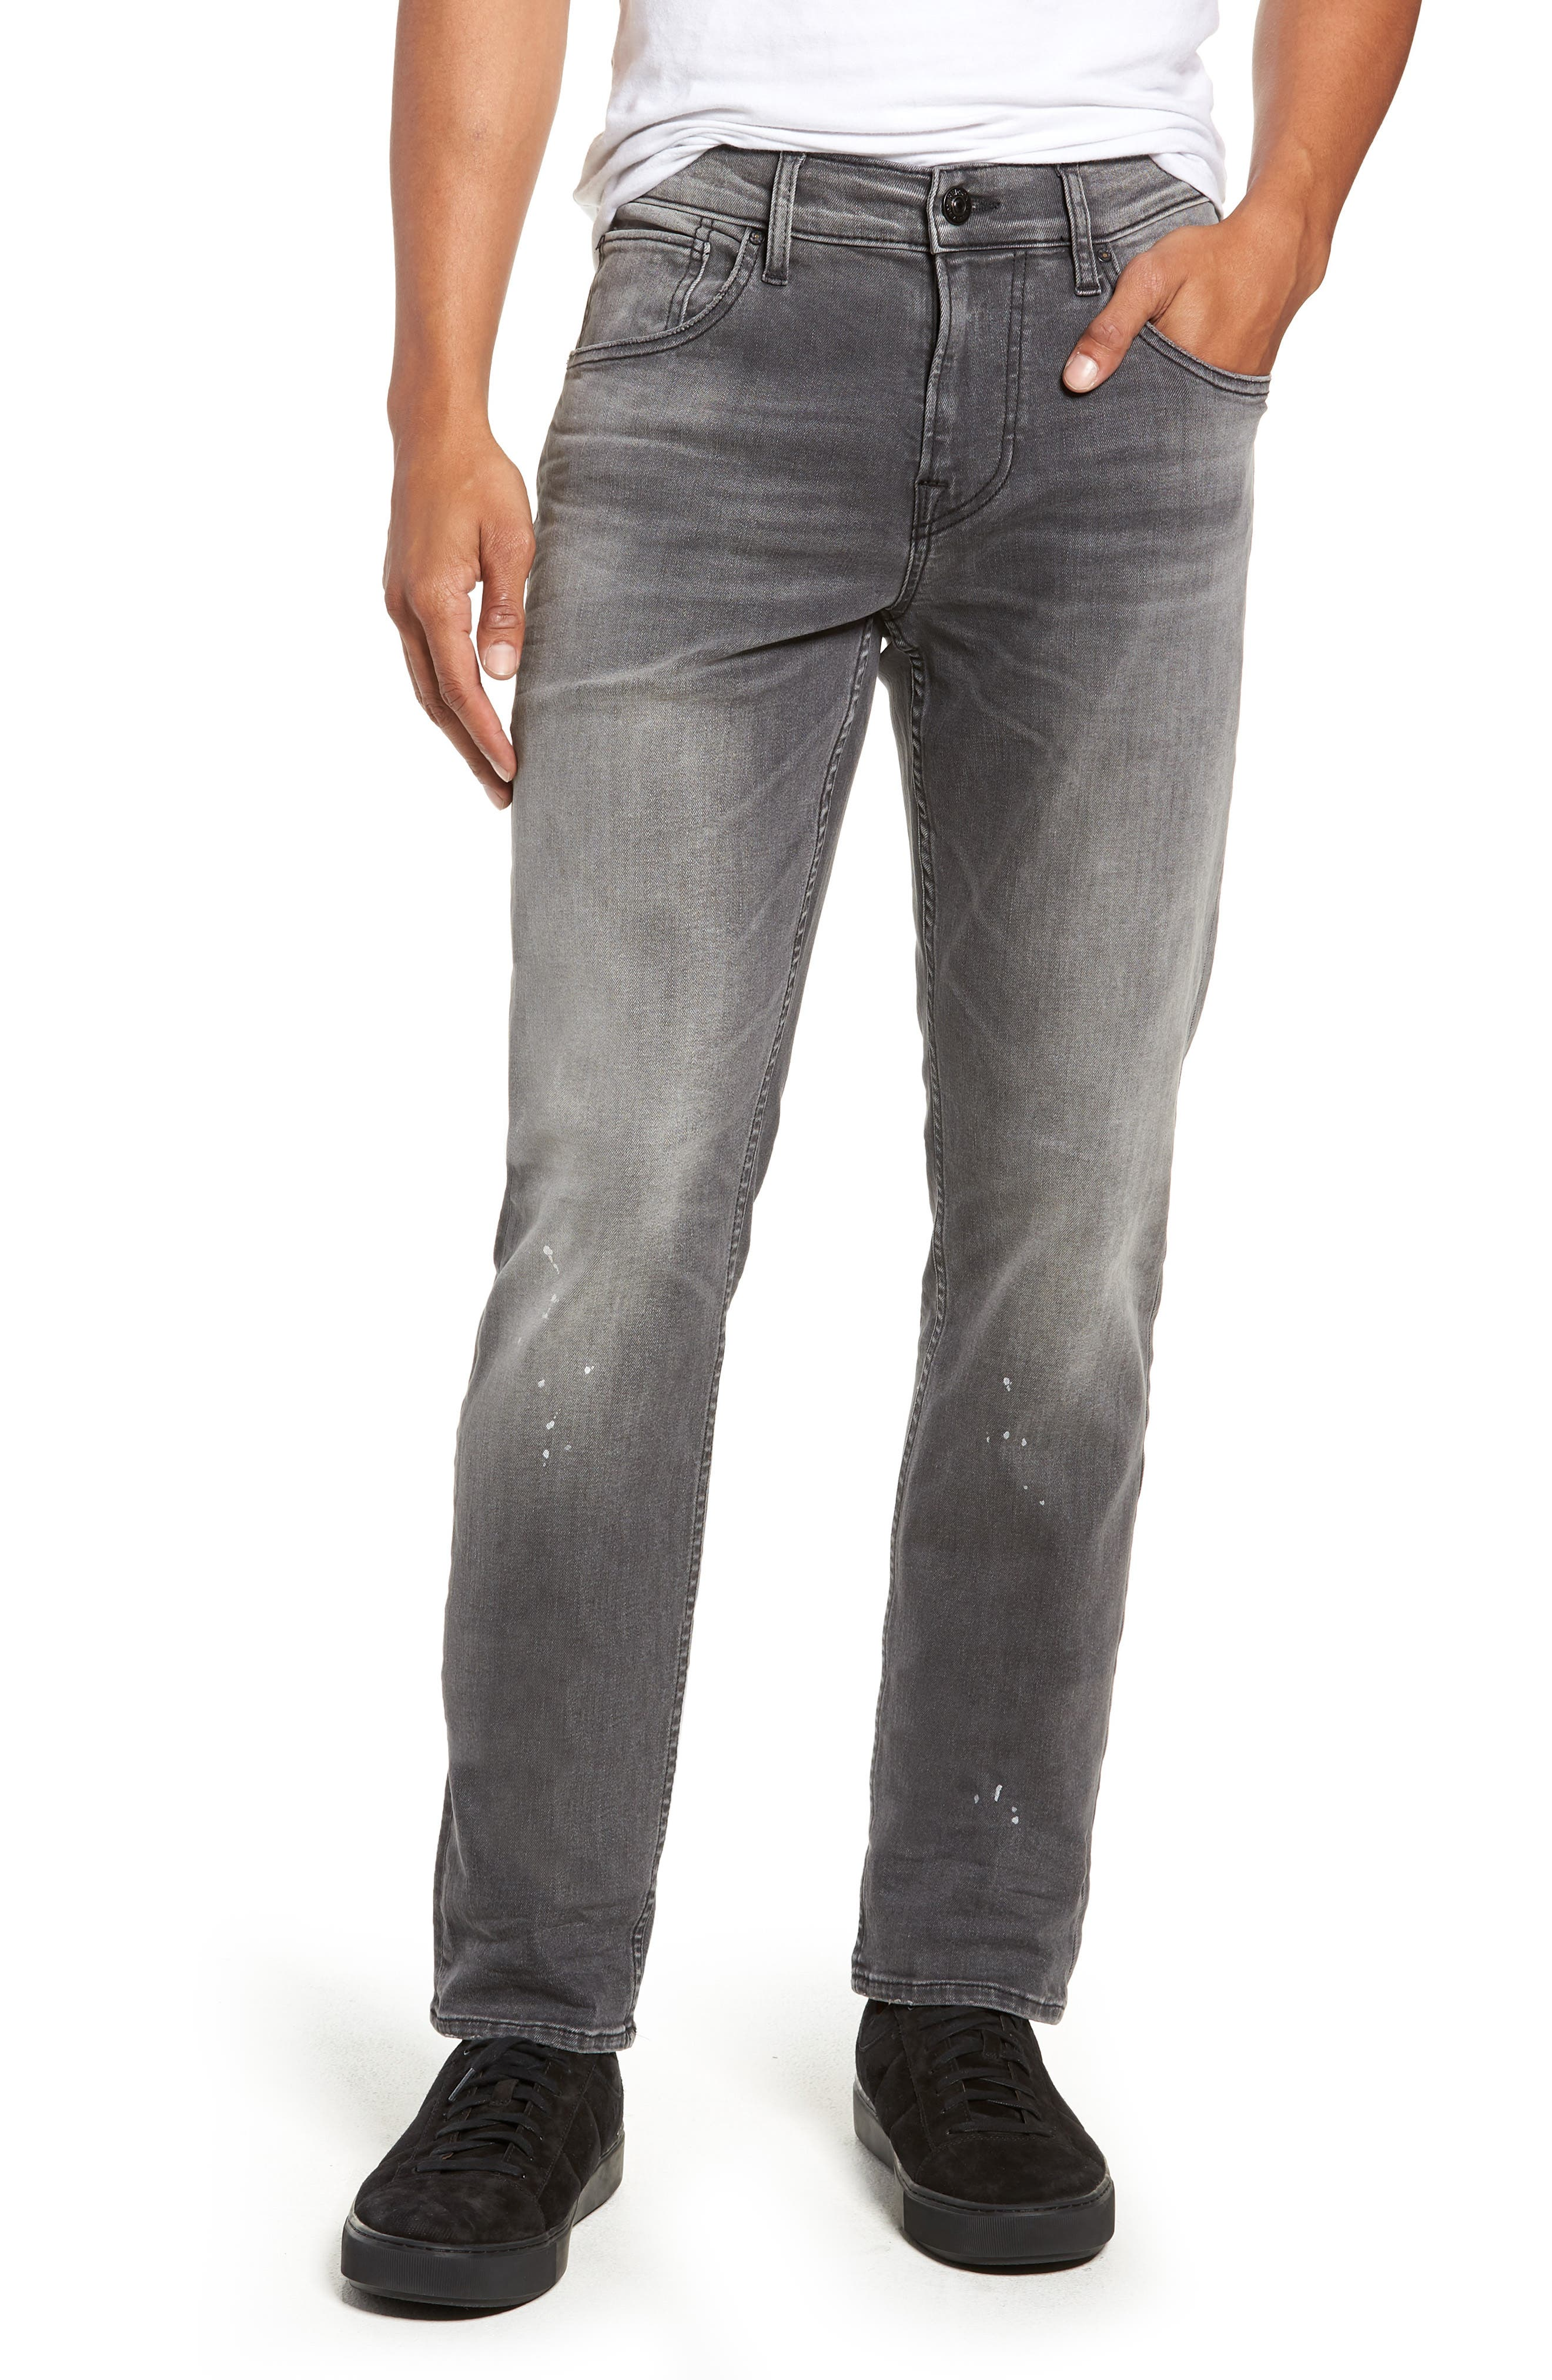 Blake Slim Fit Jeans,                         Main,                         color, VOSS